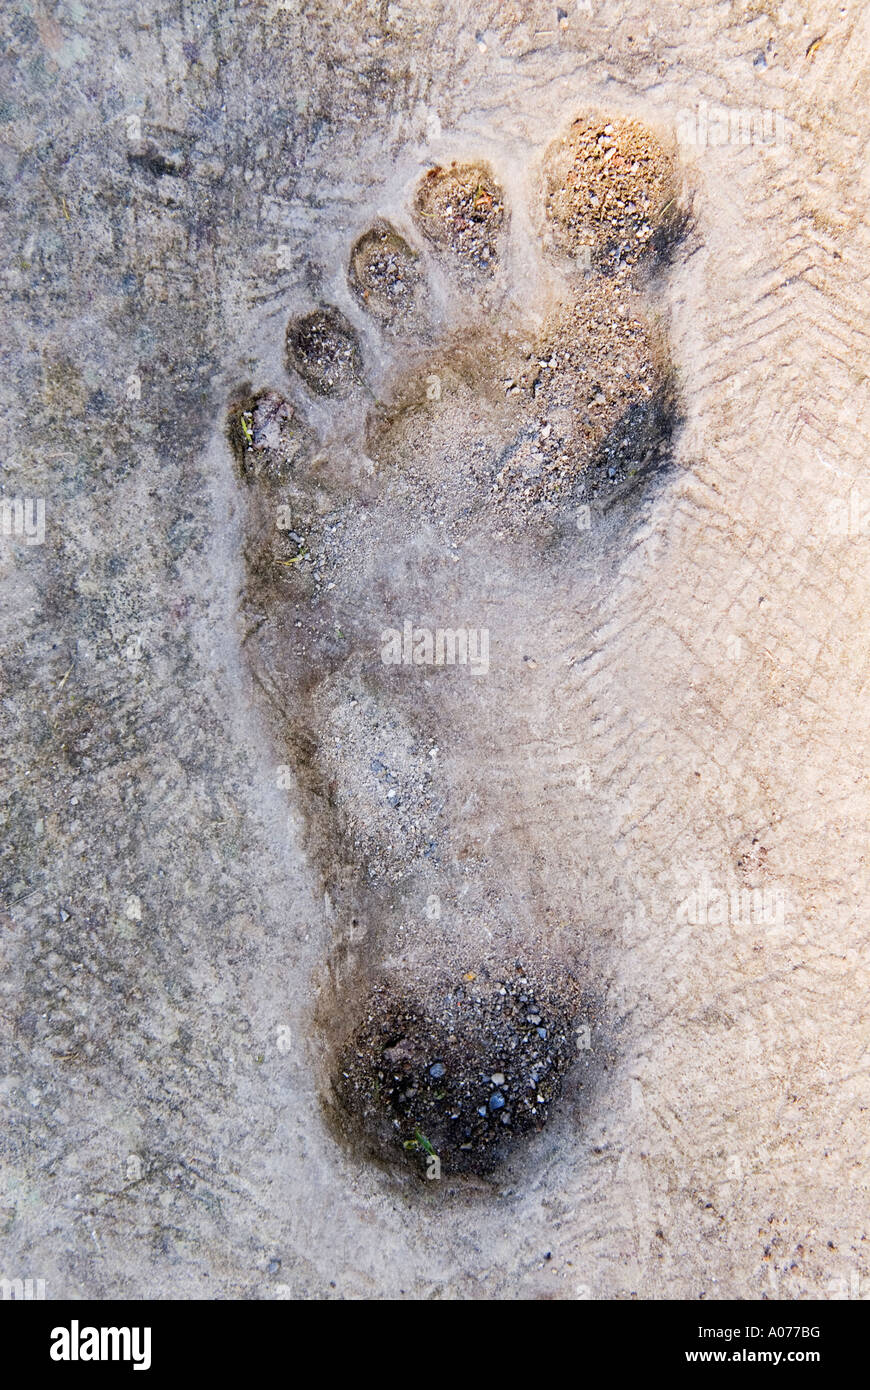 Footprint in cement - Stock Image